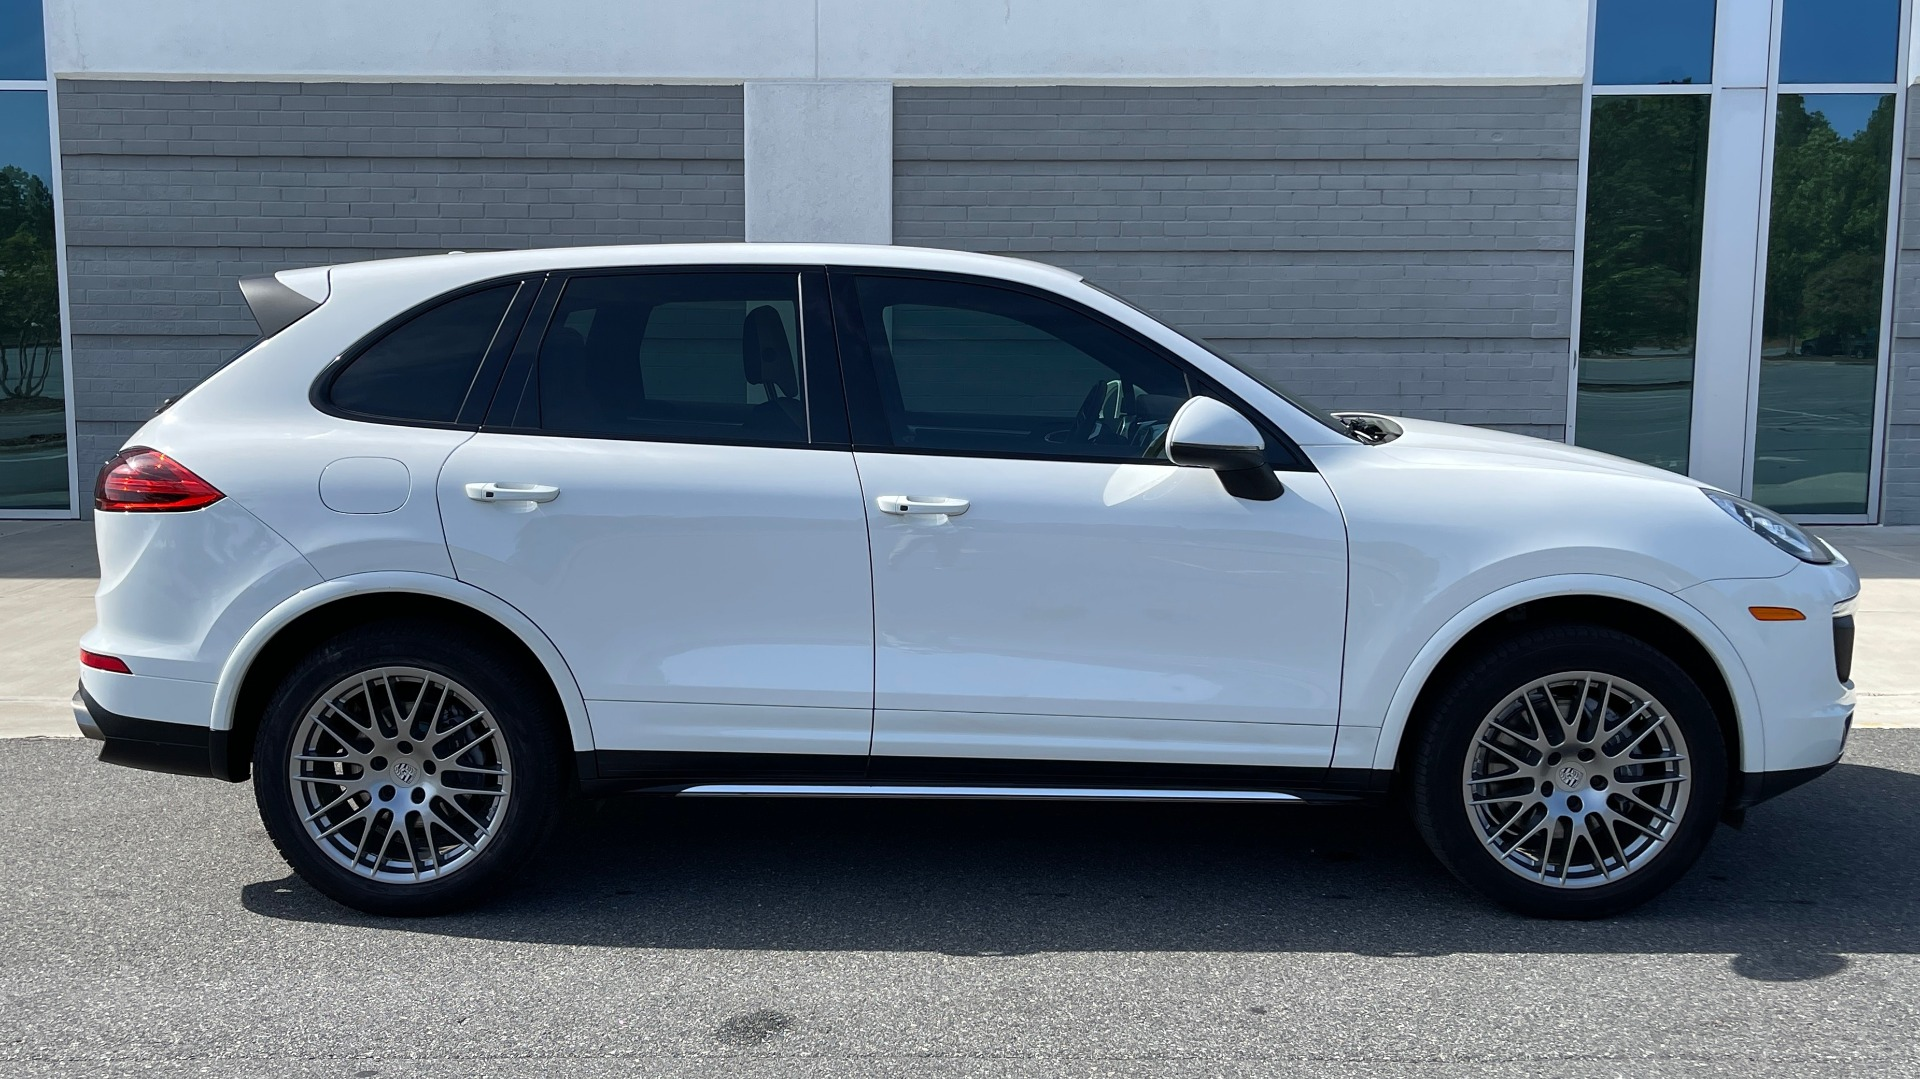 Used 2016 Porsche CAYENNE AWD / 3.6L TURBO / PREMIUM / BOSE / PANO-ROOF / NAV / LCA for sale $32,995 at Formula Imports in Charlotte NC 28227 7